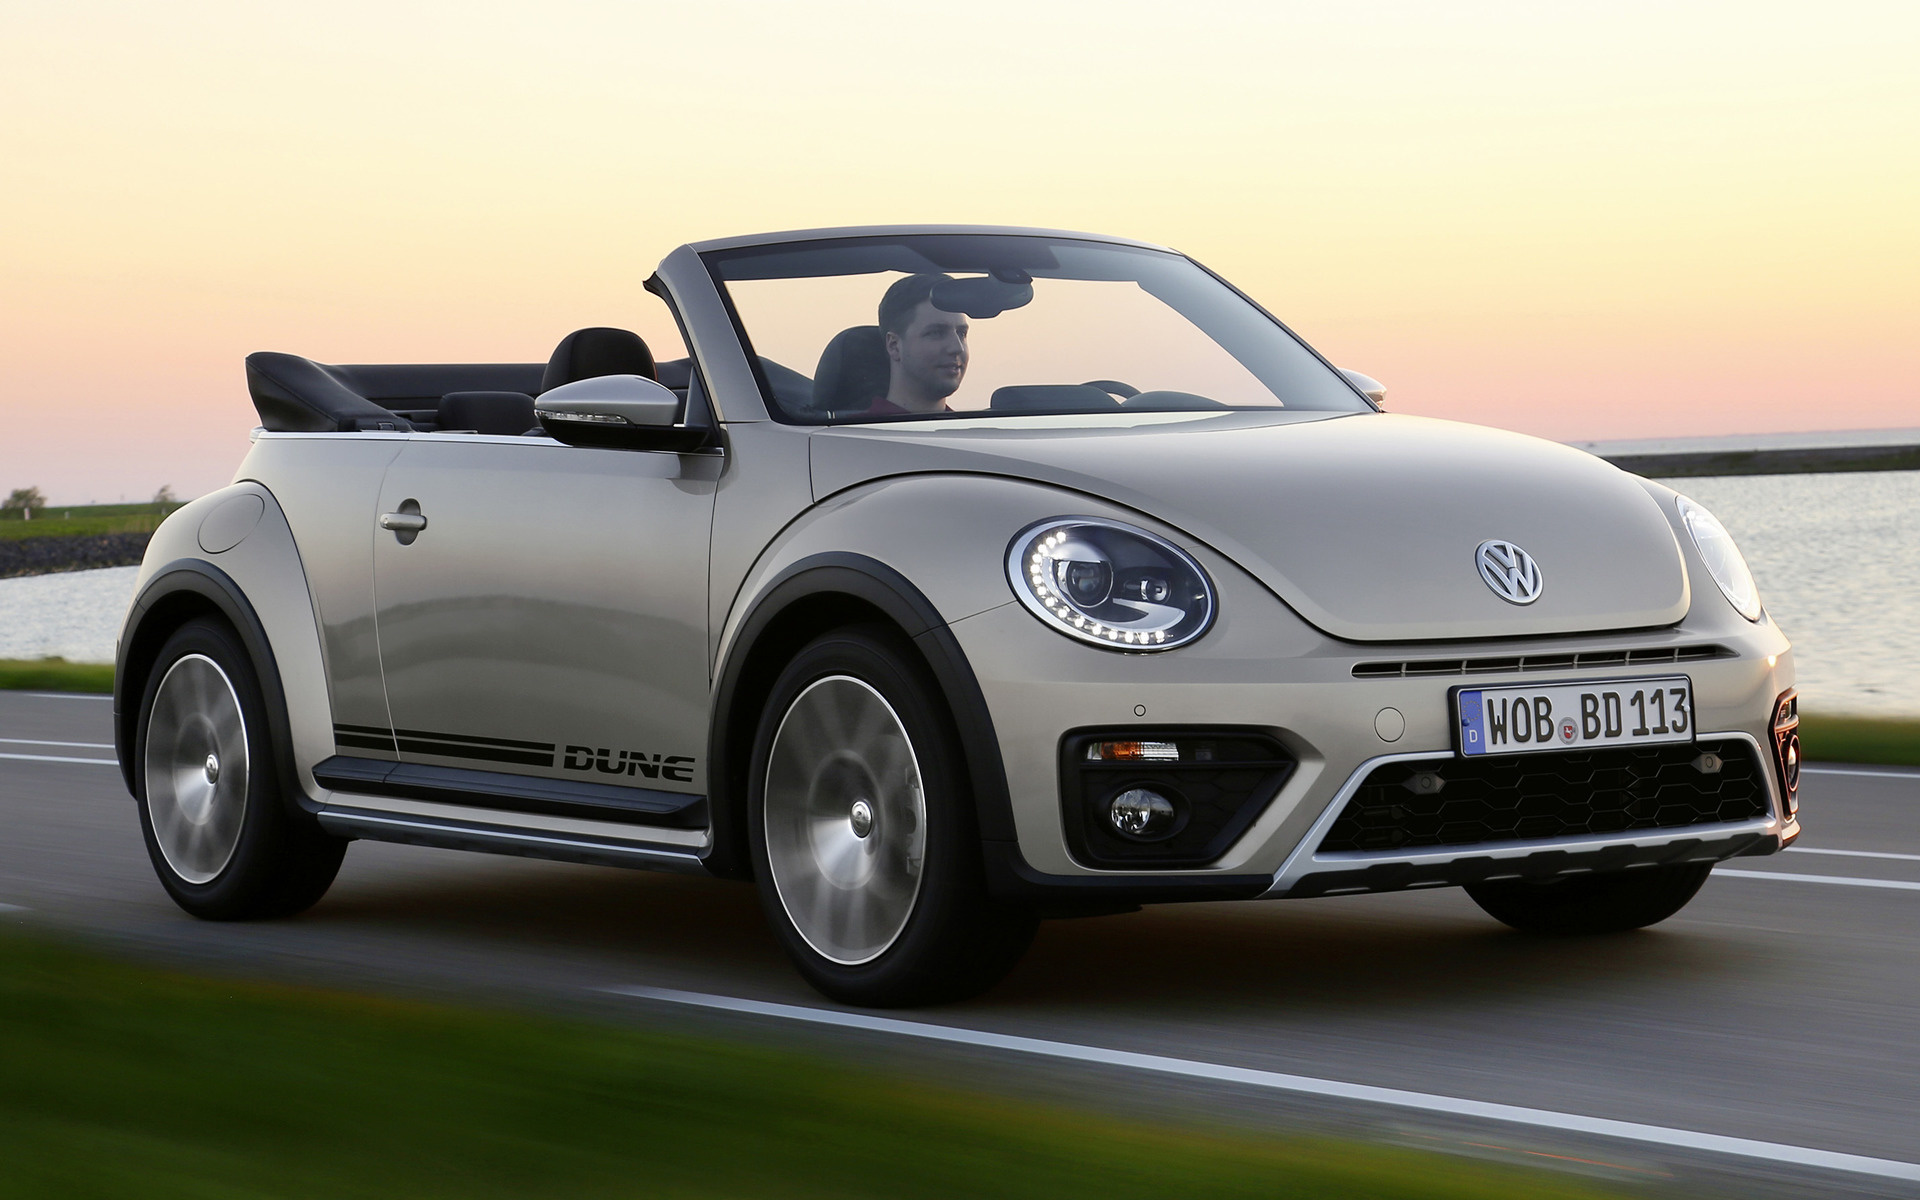 Volkswagen Beetle Dune Cabriolet (2016) Wallpapers and HD Images - Car Pixel